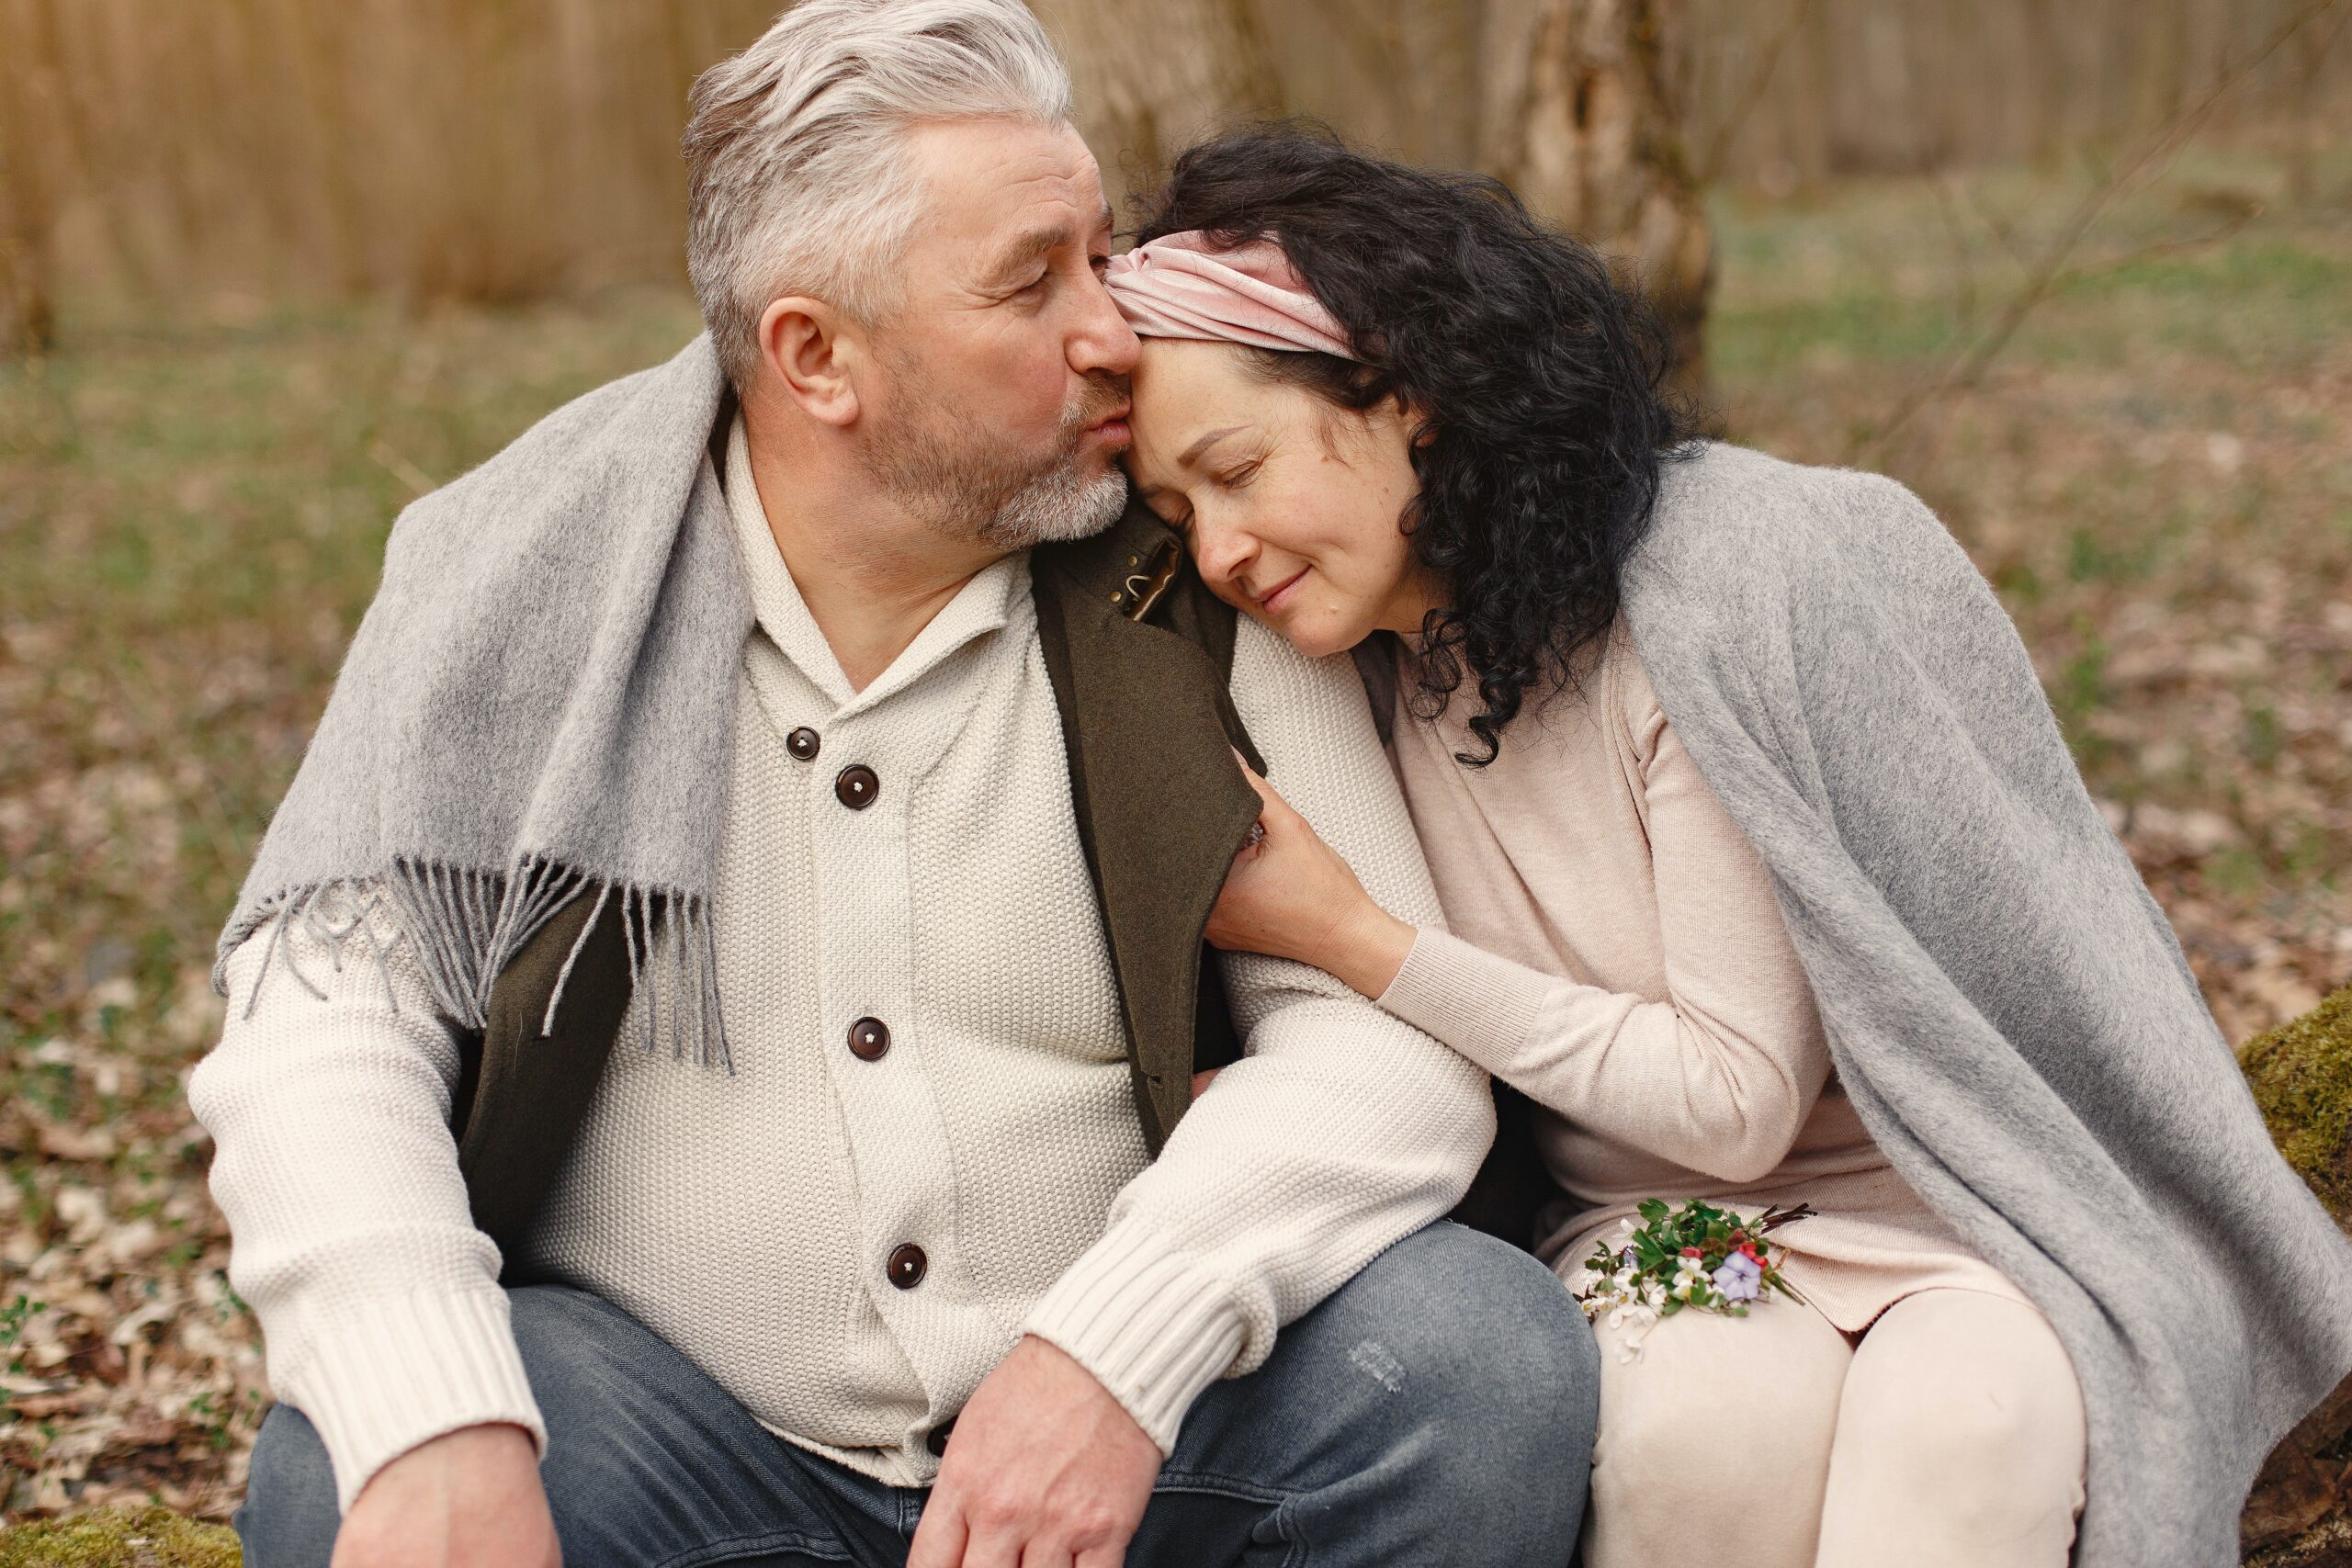 older man kissing forehead of older woman with pink headband and dark hair, who has a bit of picked flowers on her lap.